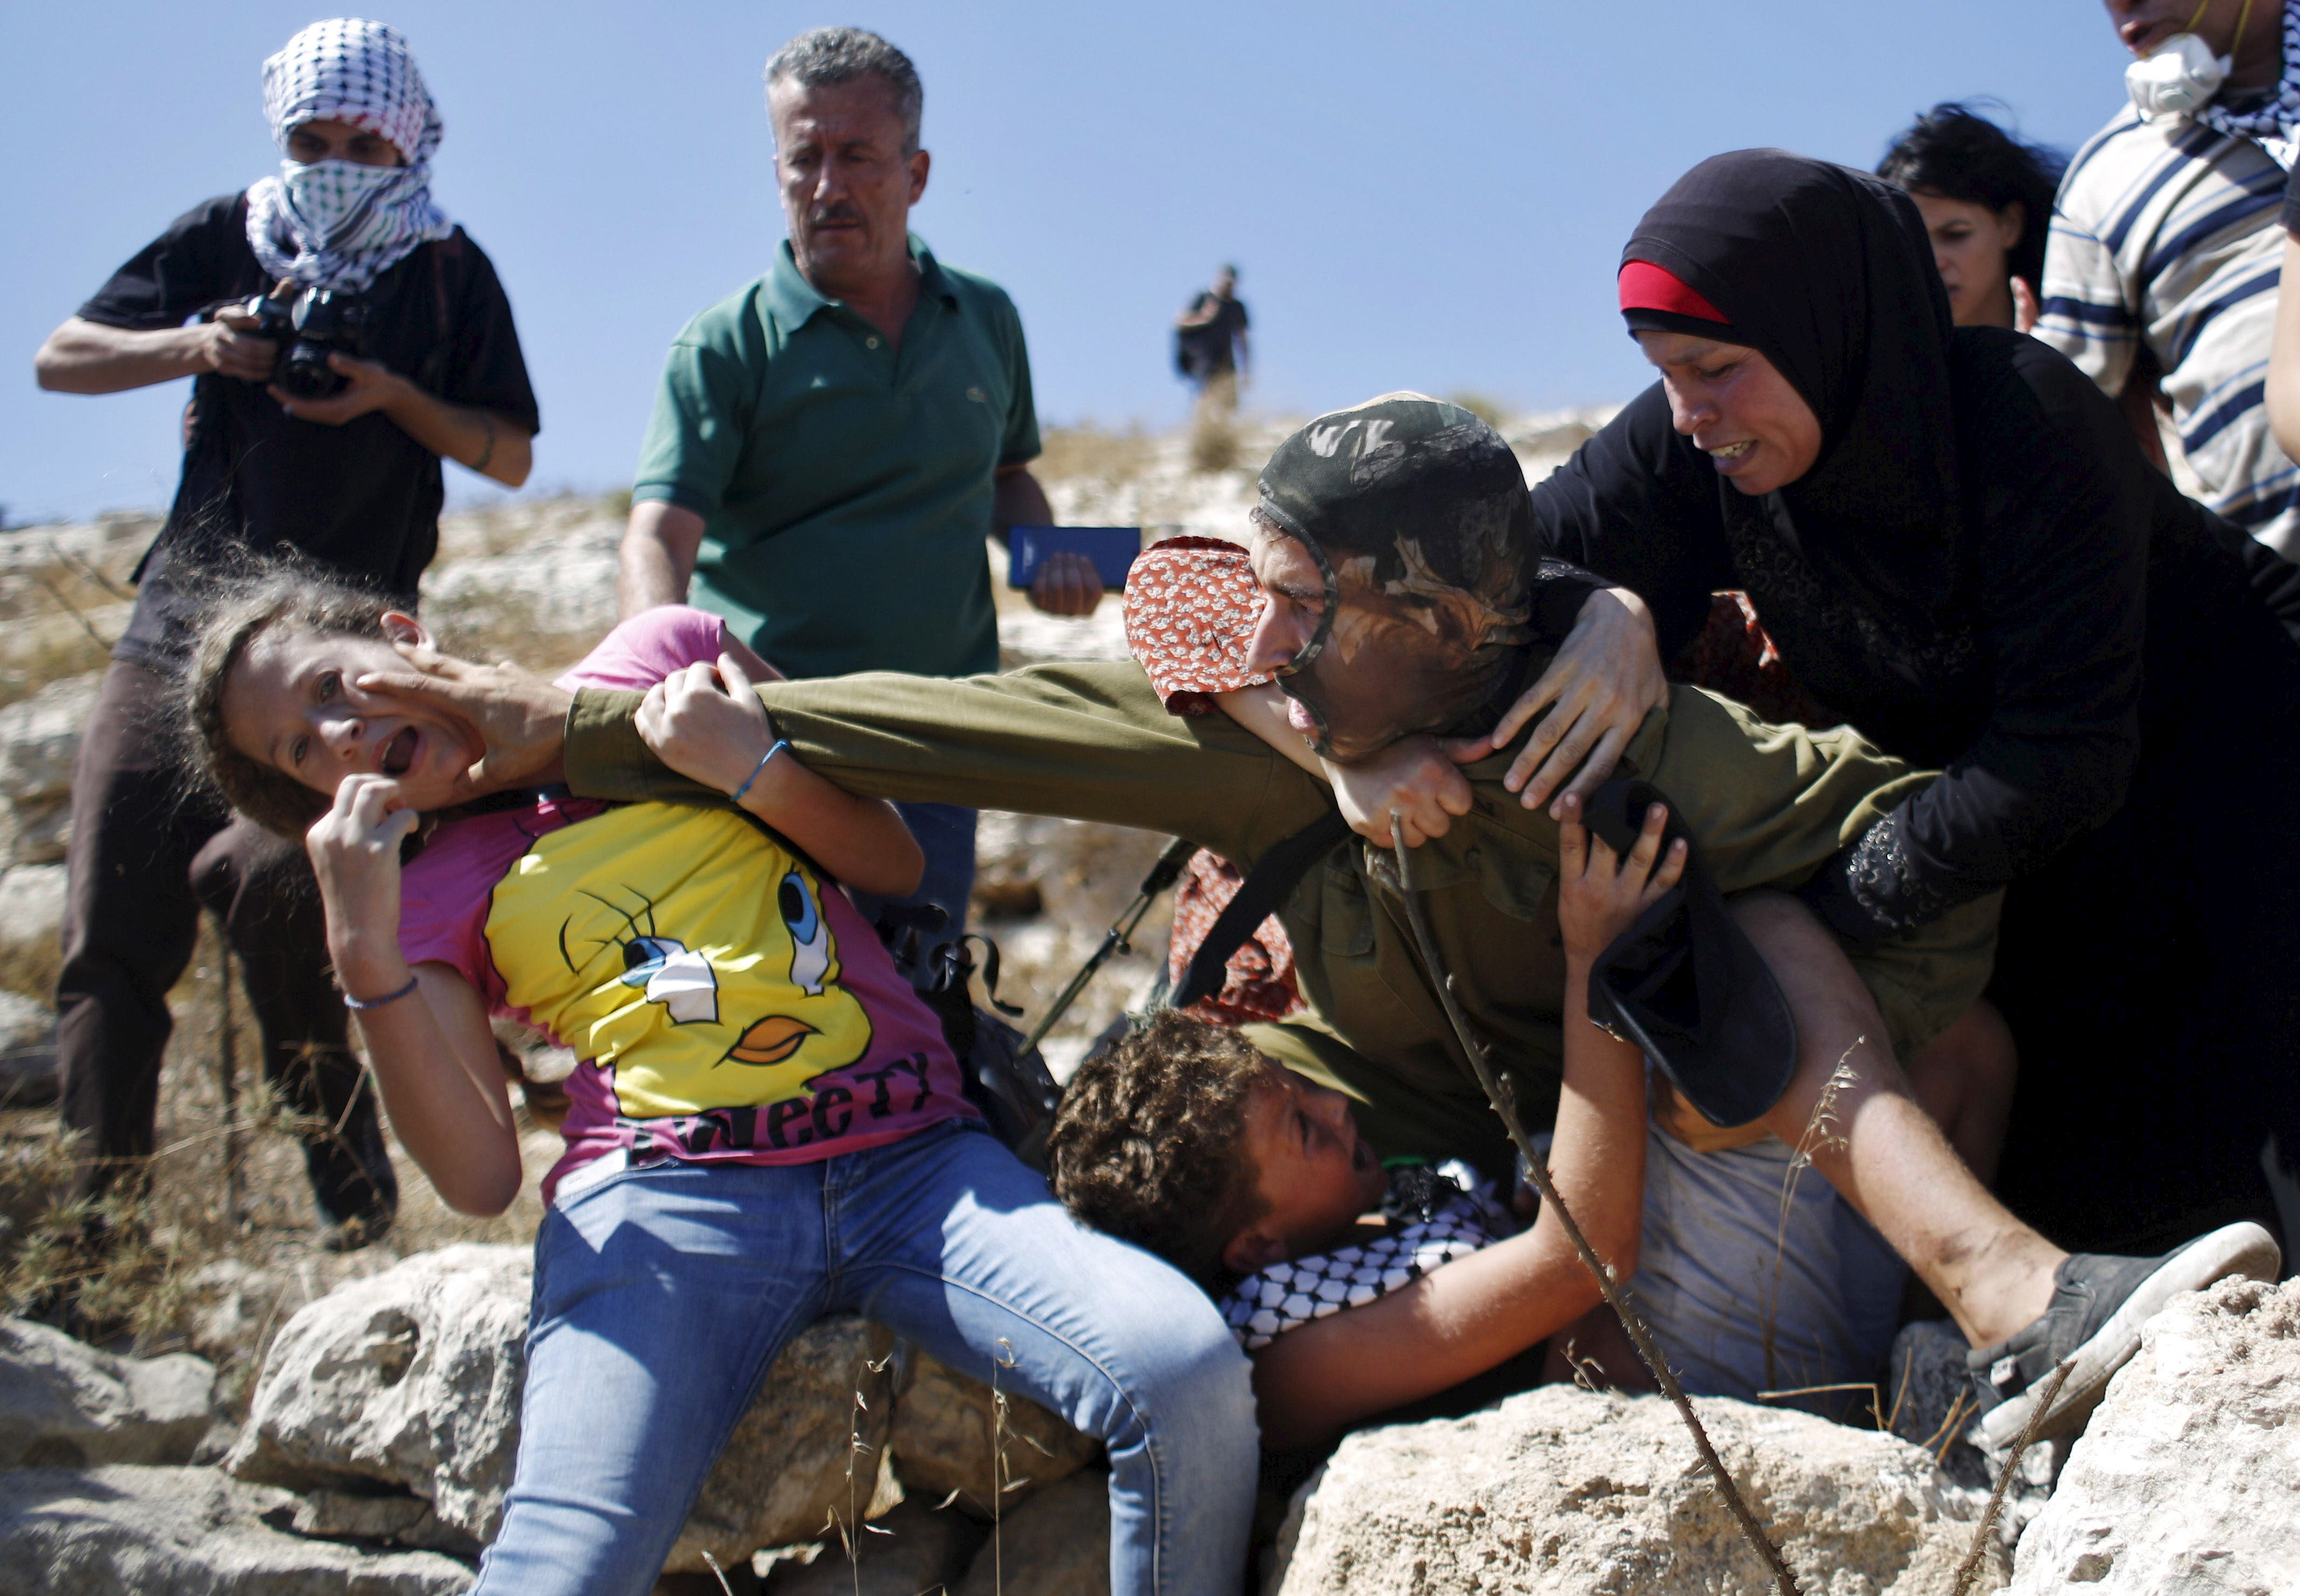 Palestinians scuffle with an Israeli soldier as they try to prevent him from detaining a boy during a protest against Jewish settlements in the West Bank village of Nabi Saleh, near Ramallah August 28, 2015. (Reuters)